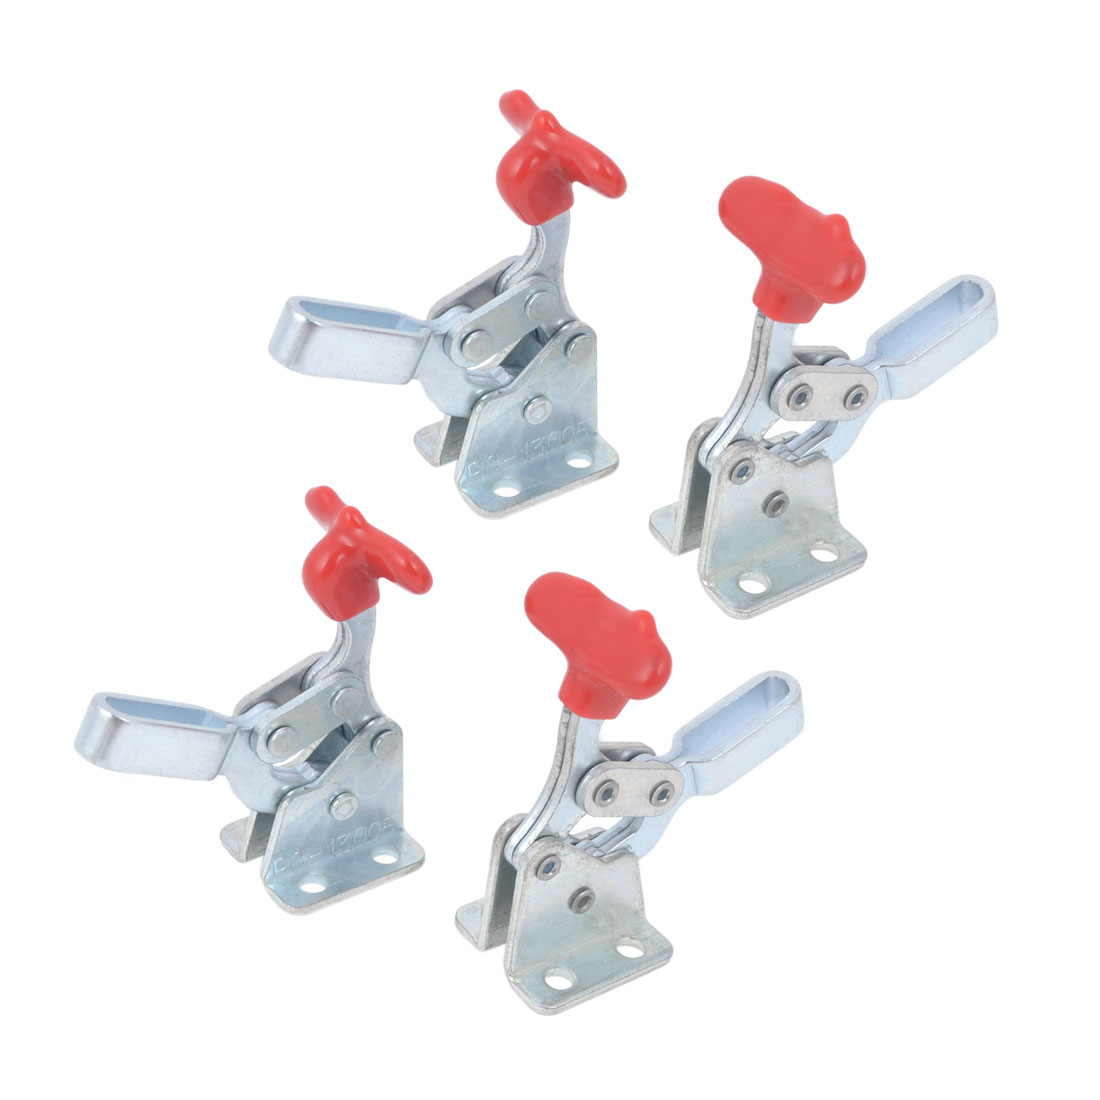 4 Pcs U Shaped Bar Hand Tool Red Grip Flanged Base Horizontal Quickly Holding Toggle Clamp 68Kg 150Lbs PC-13005